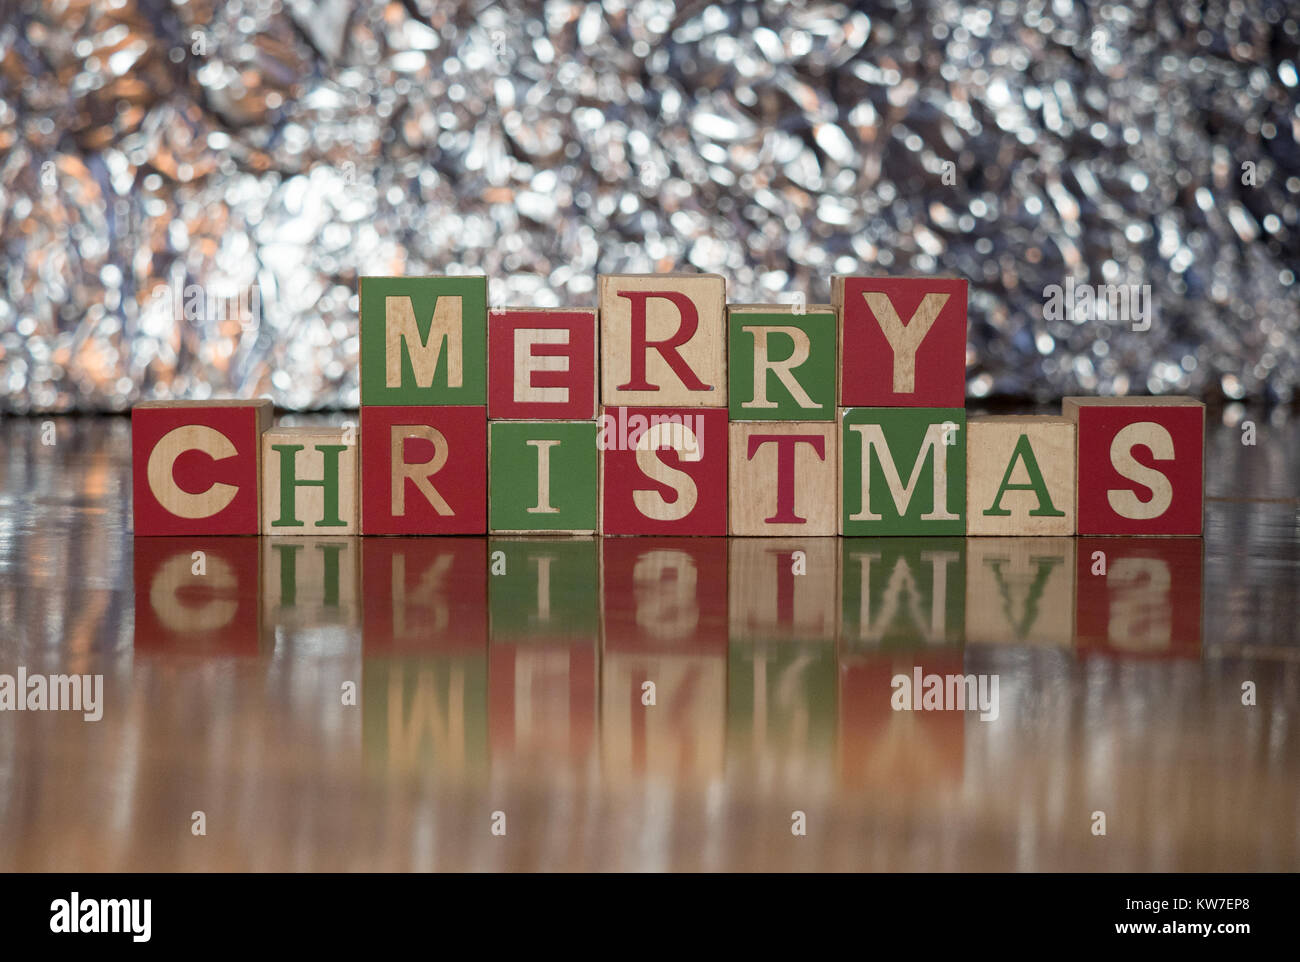 Wood blocks in green, red and light wood with capital letters spelling Merry Christmas. Photographed with a shallow - Stock Image